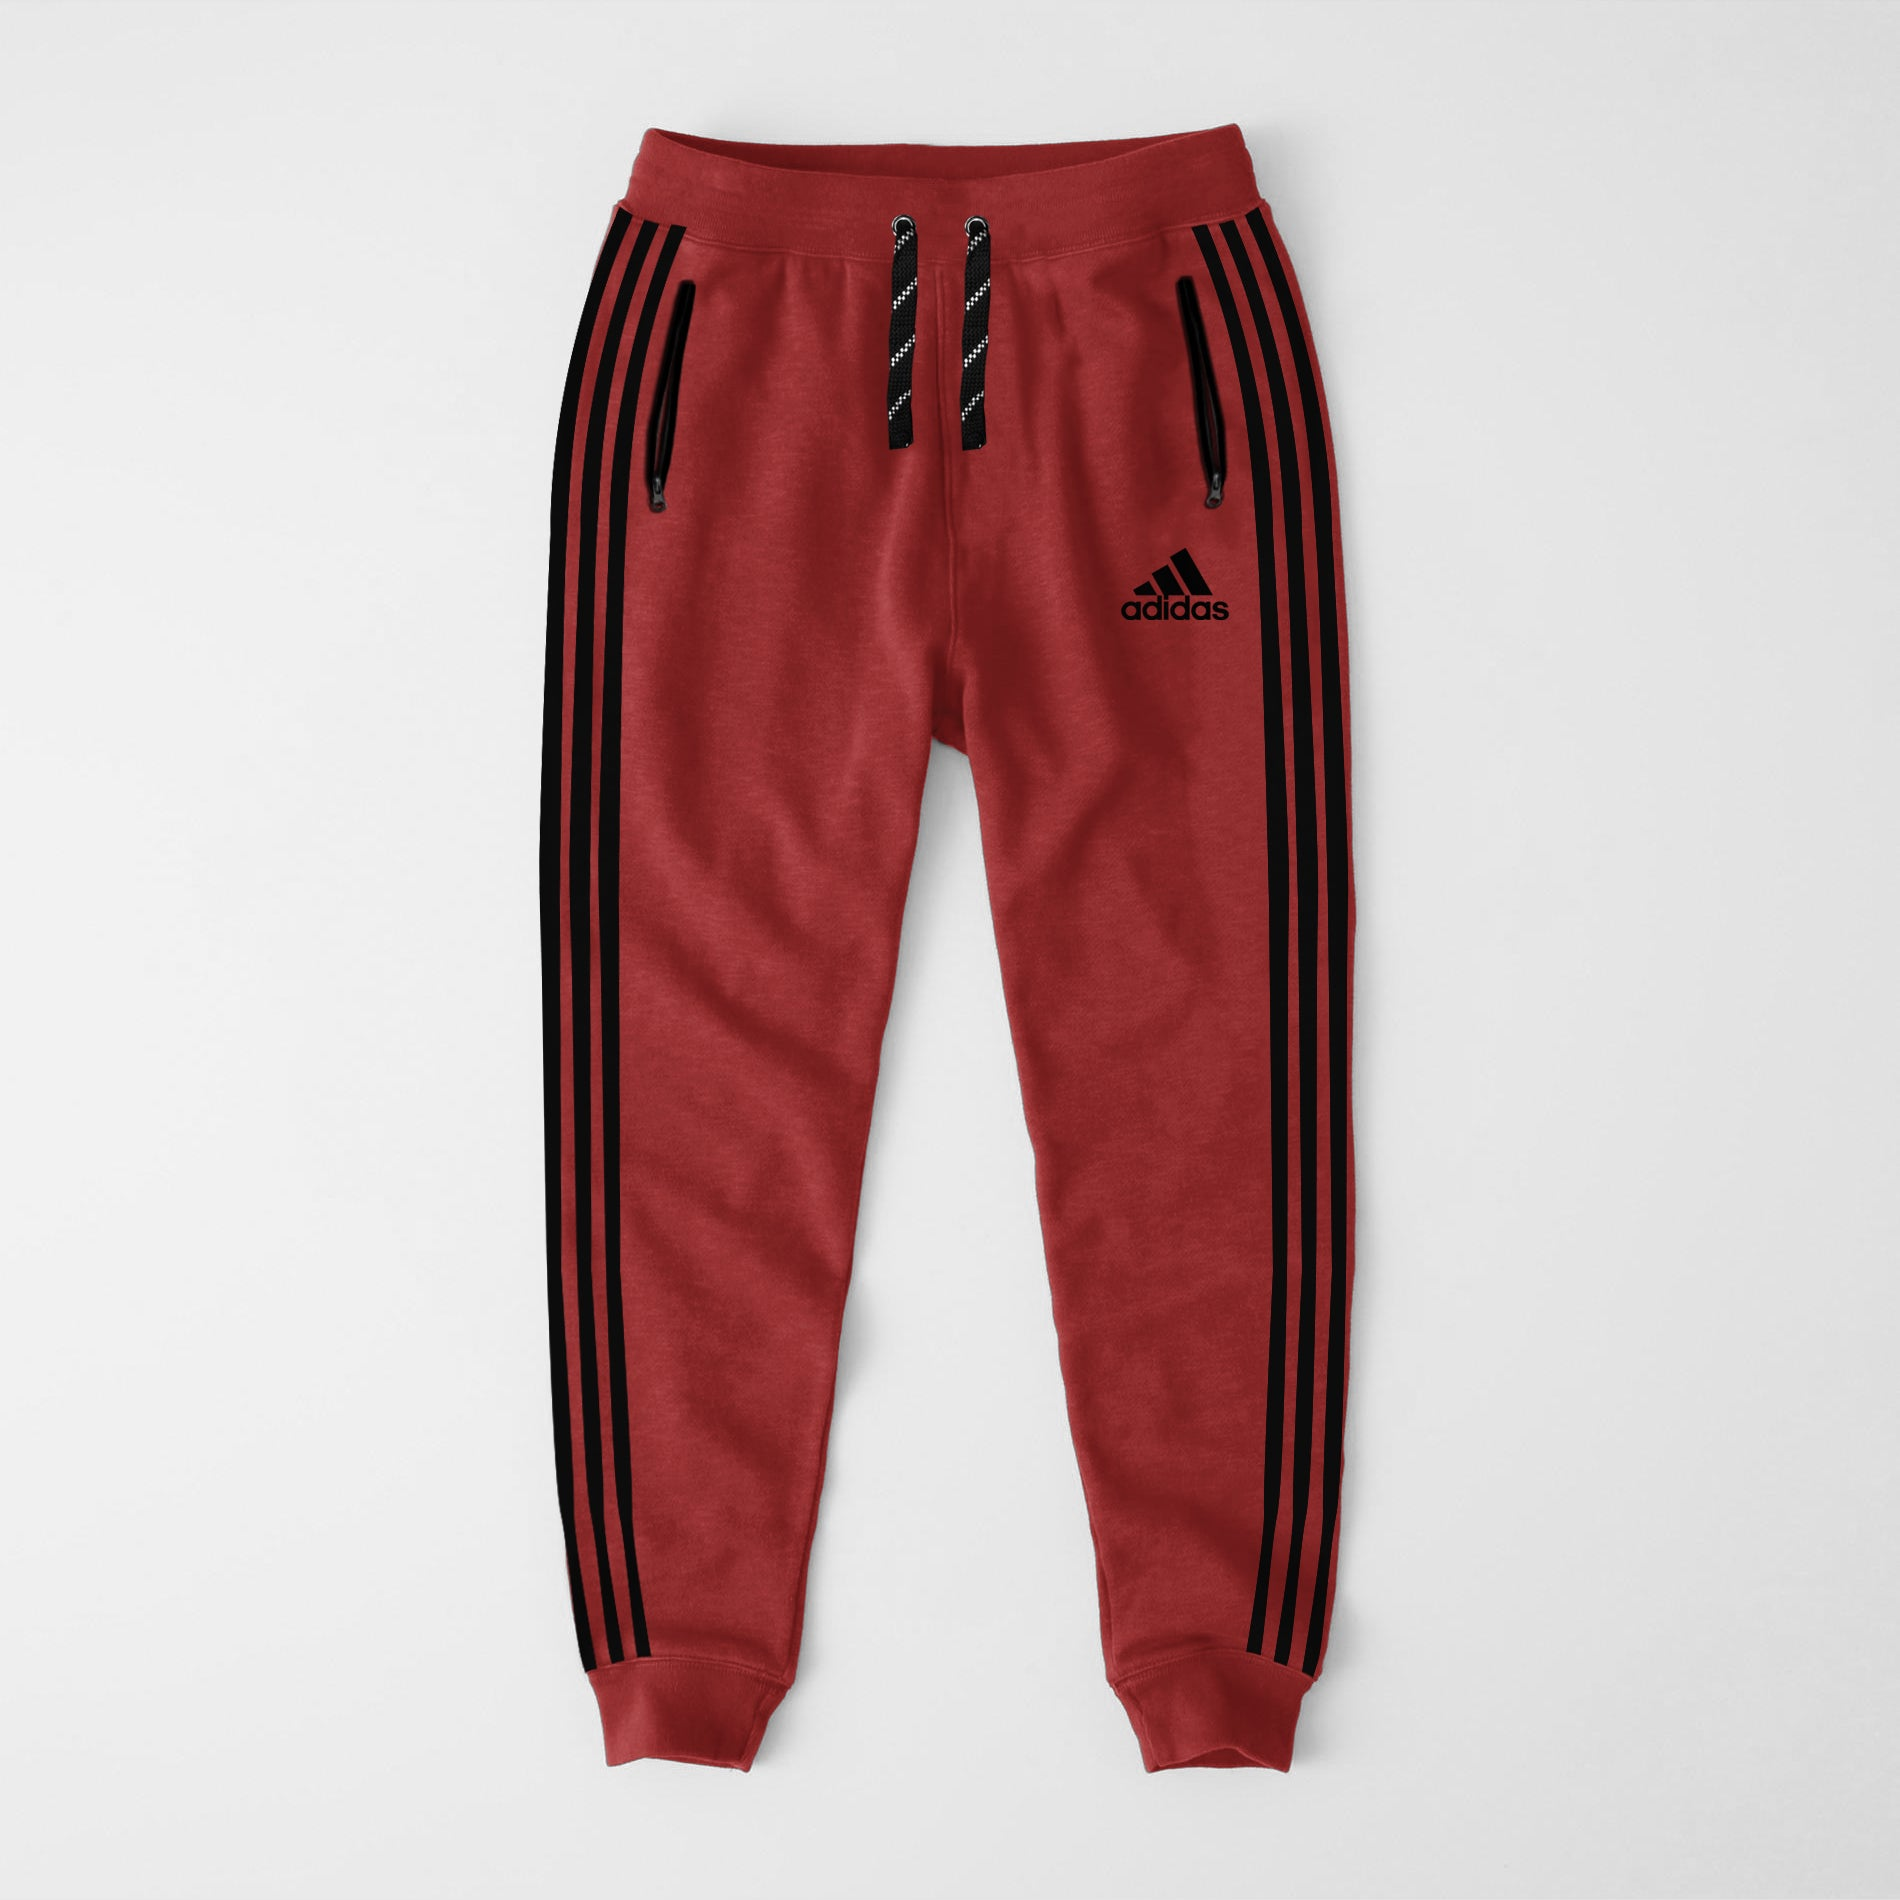 Adidas Single Jersey Slim Fit Jogger Trouser For Men-Coral Red-NA8243